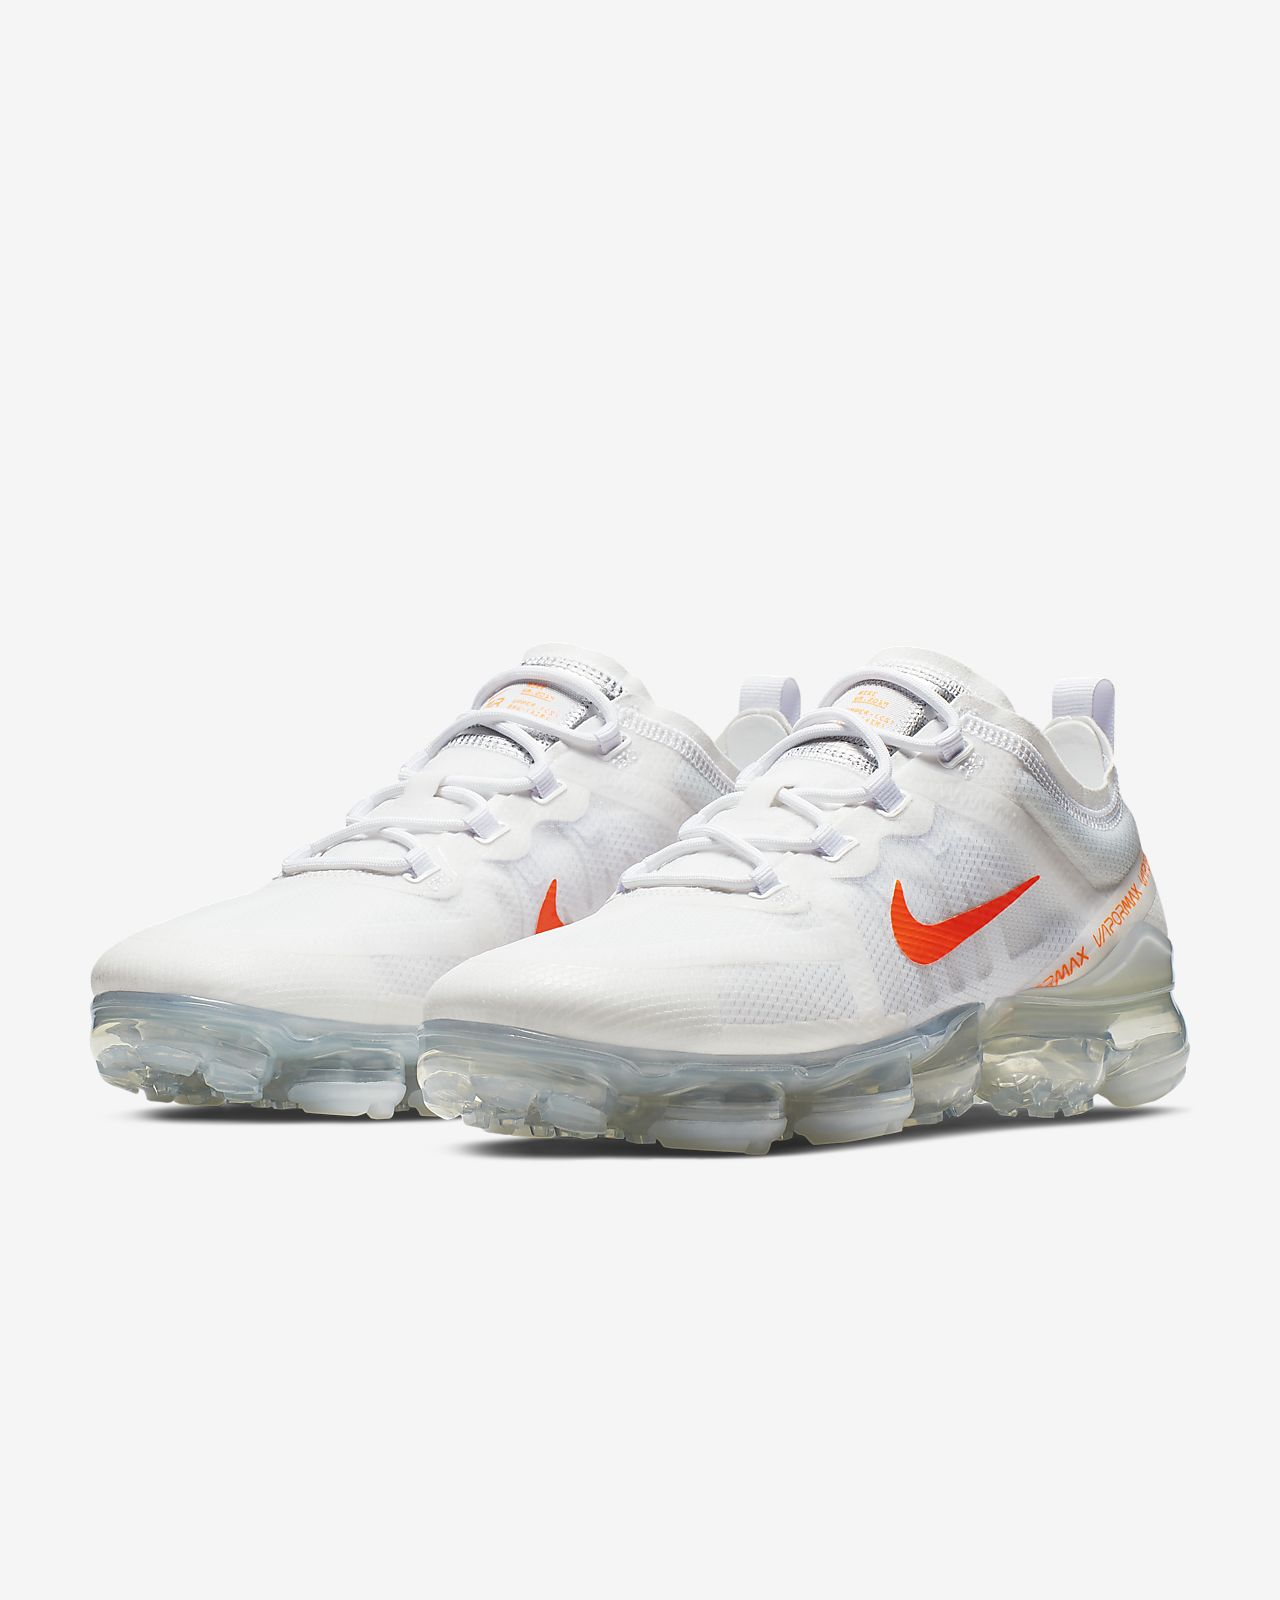 d7dad7ebf14 Nike Air VaporMax 2019 Men s Shoe. Nike.com LU